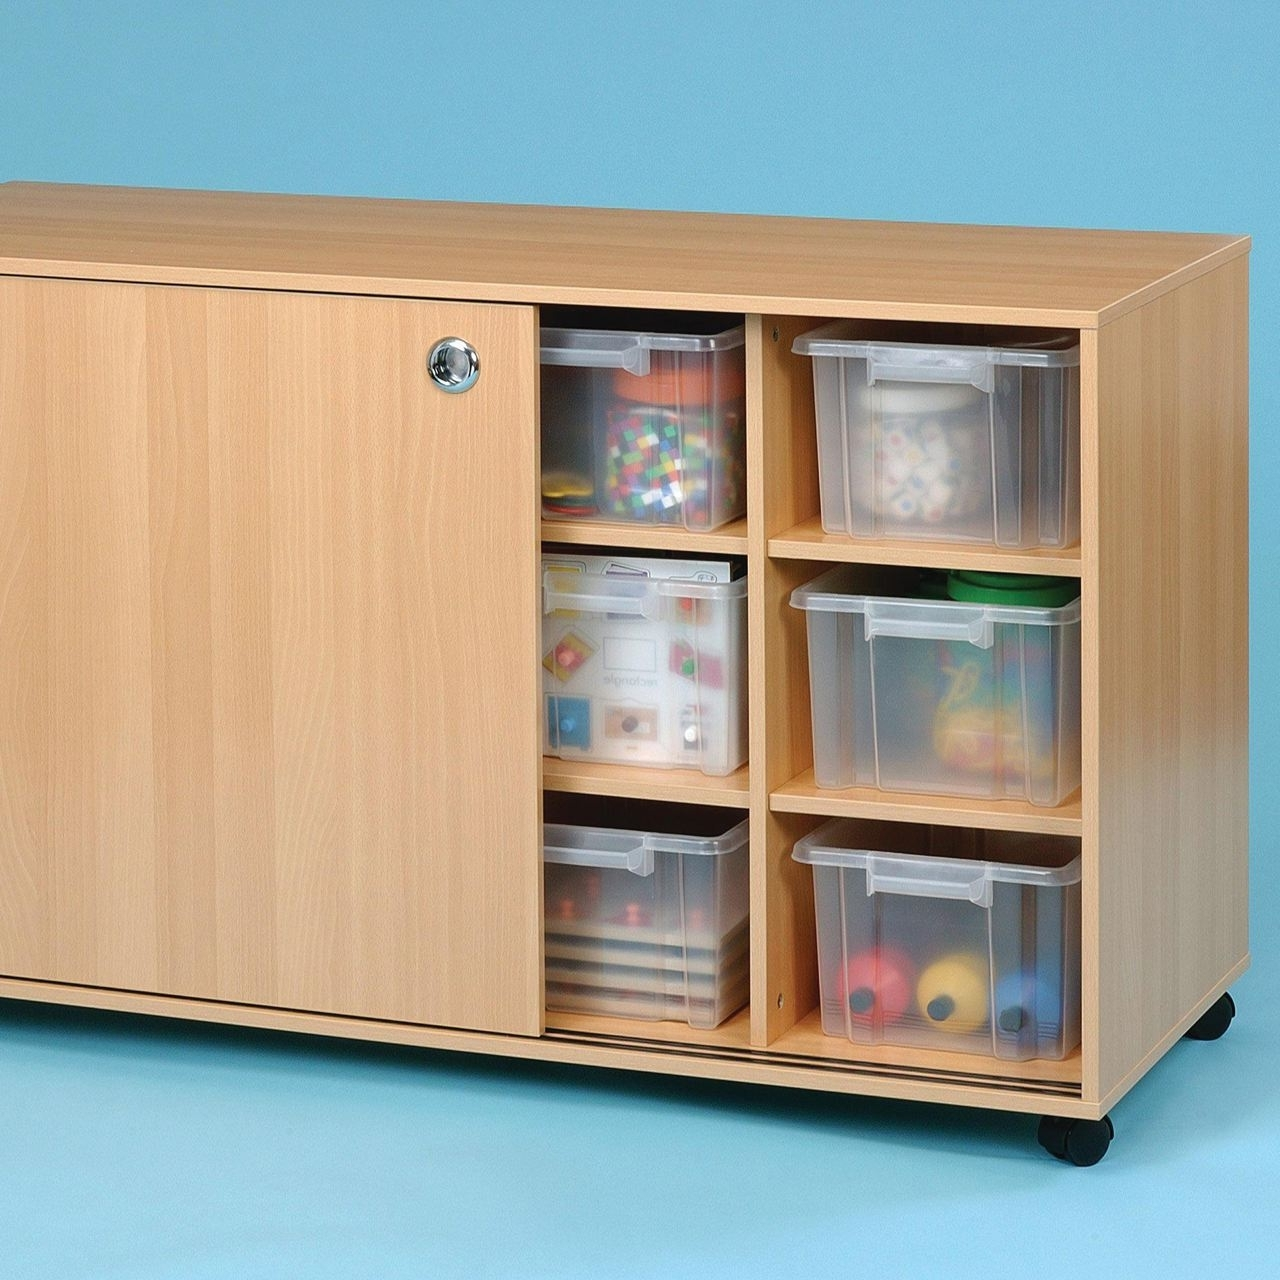 2018 Dfe Furniture For Schools (View 2 of 15)